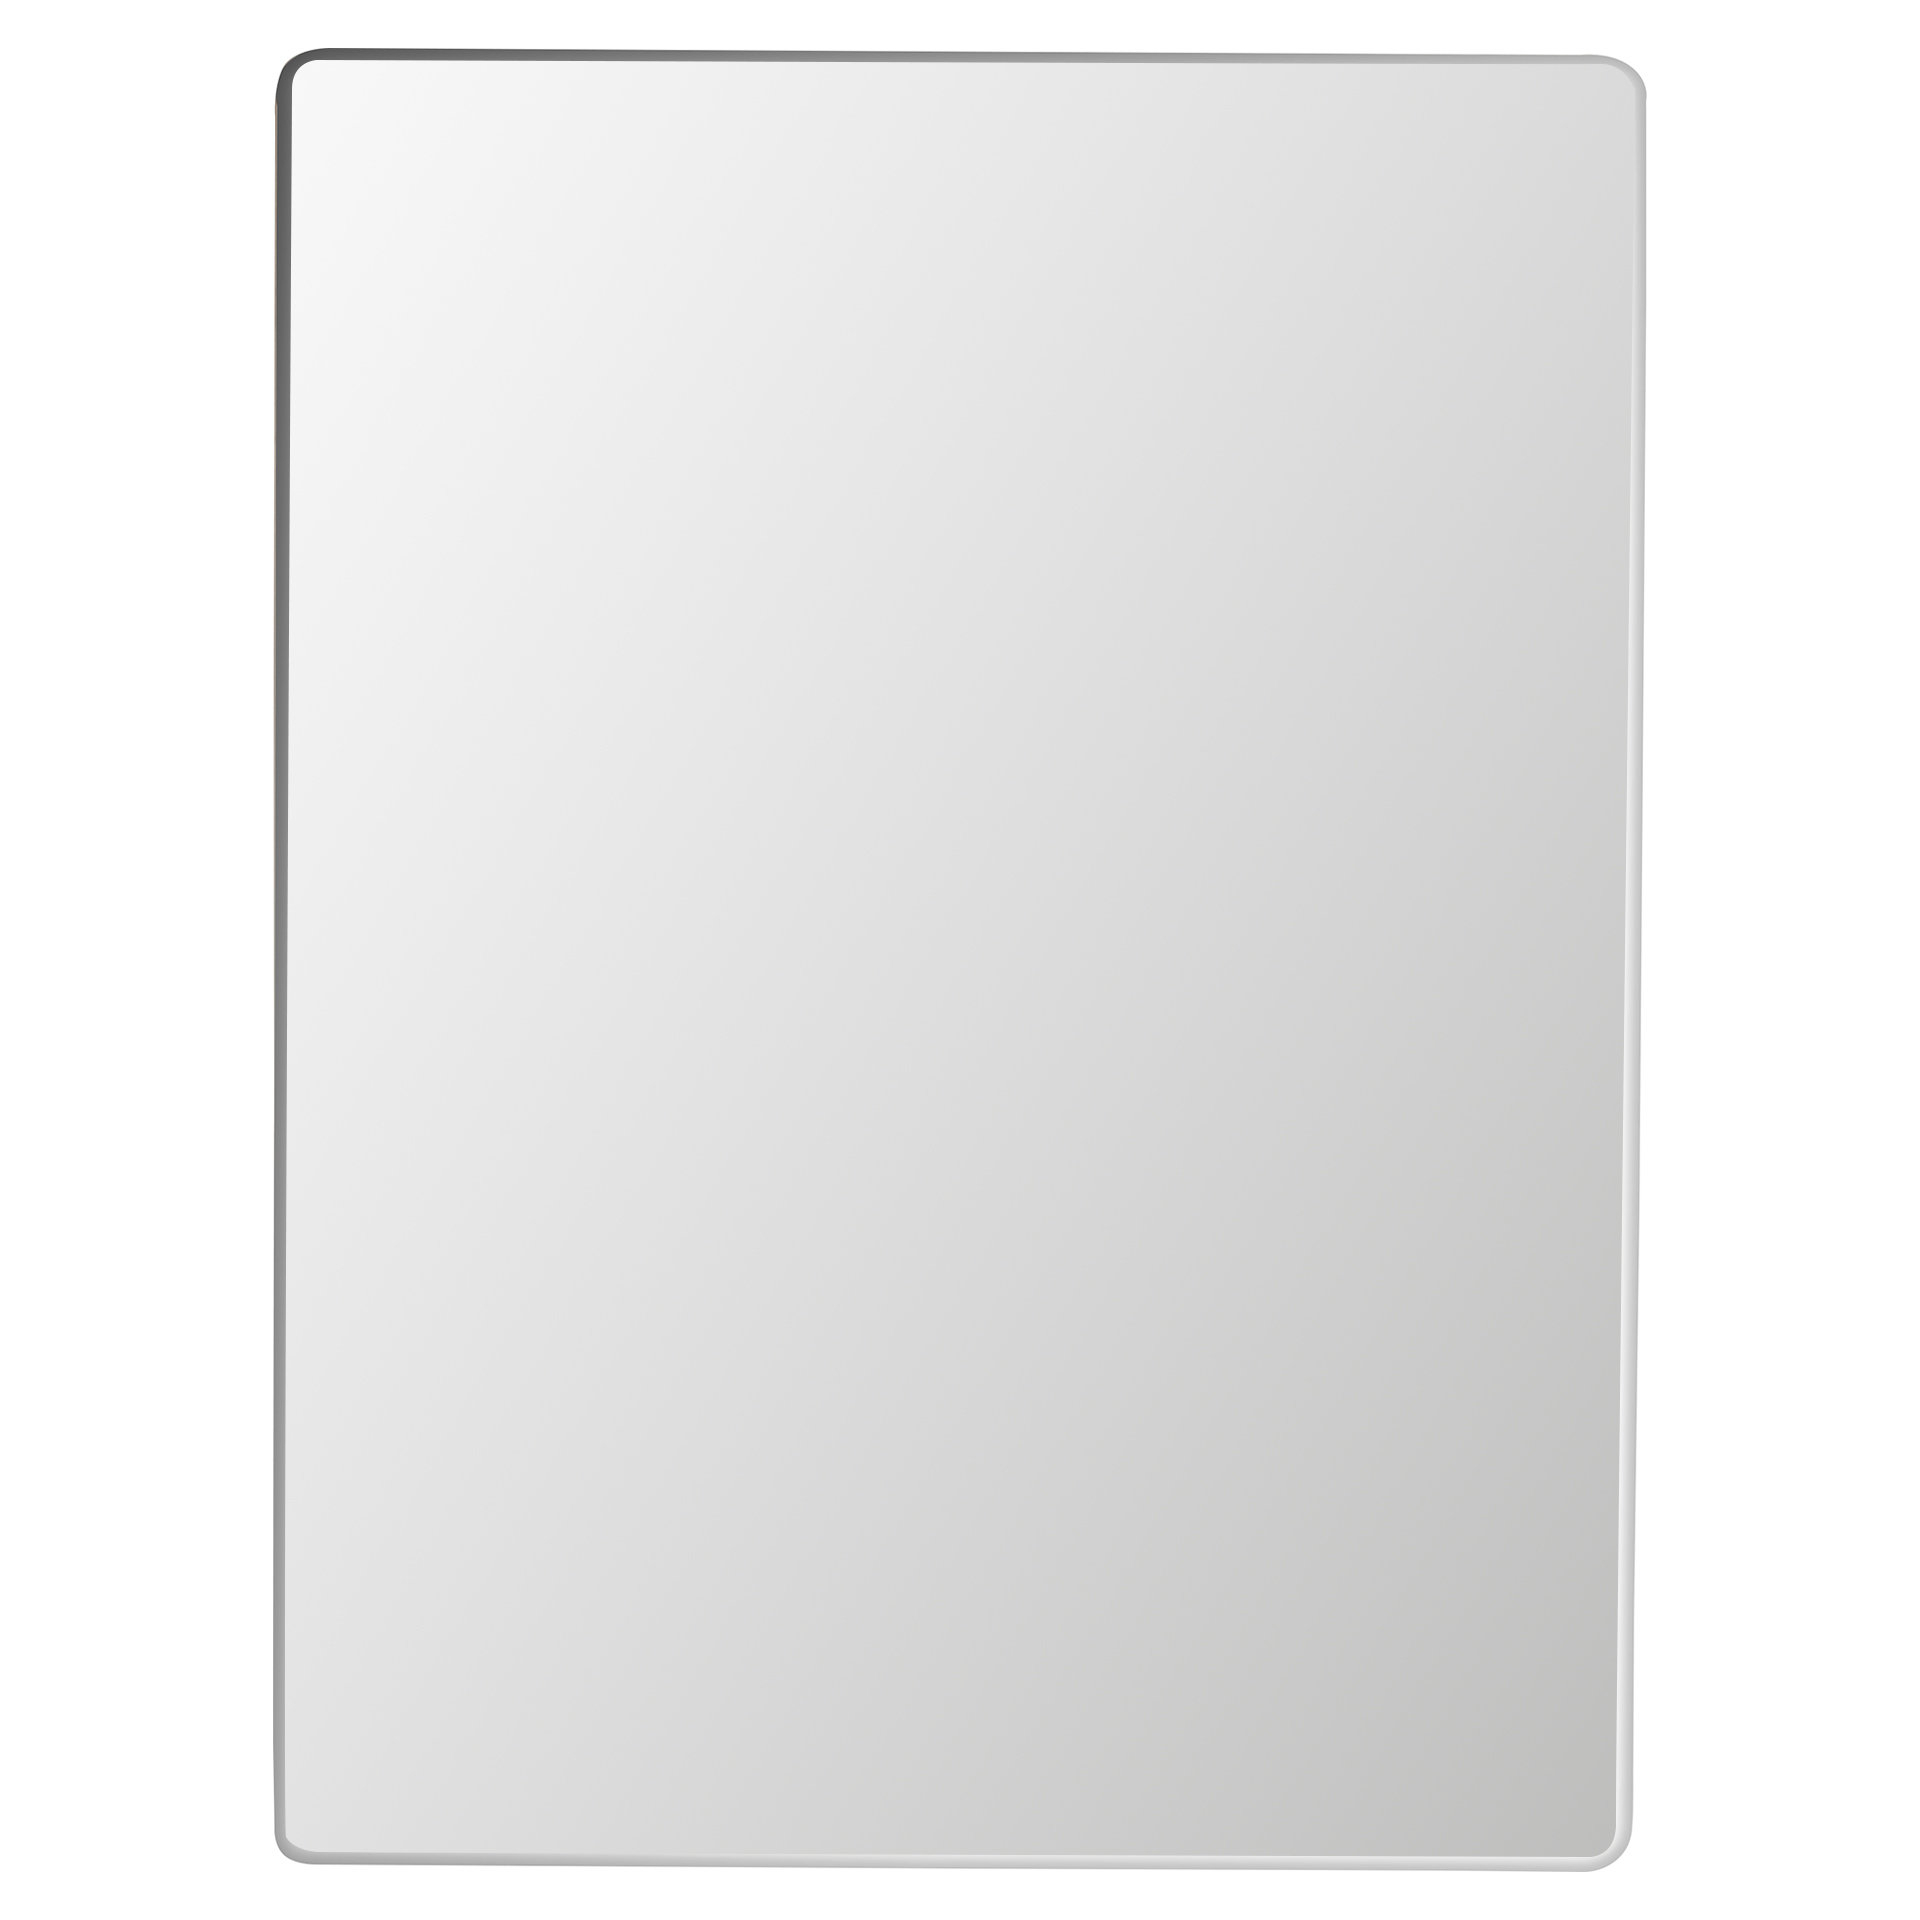 Famous Kayden Accent Mirrors For Kayden Accent Mirror (View 5 of 20)